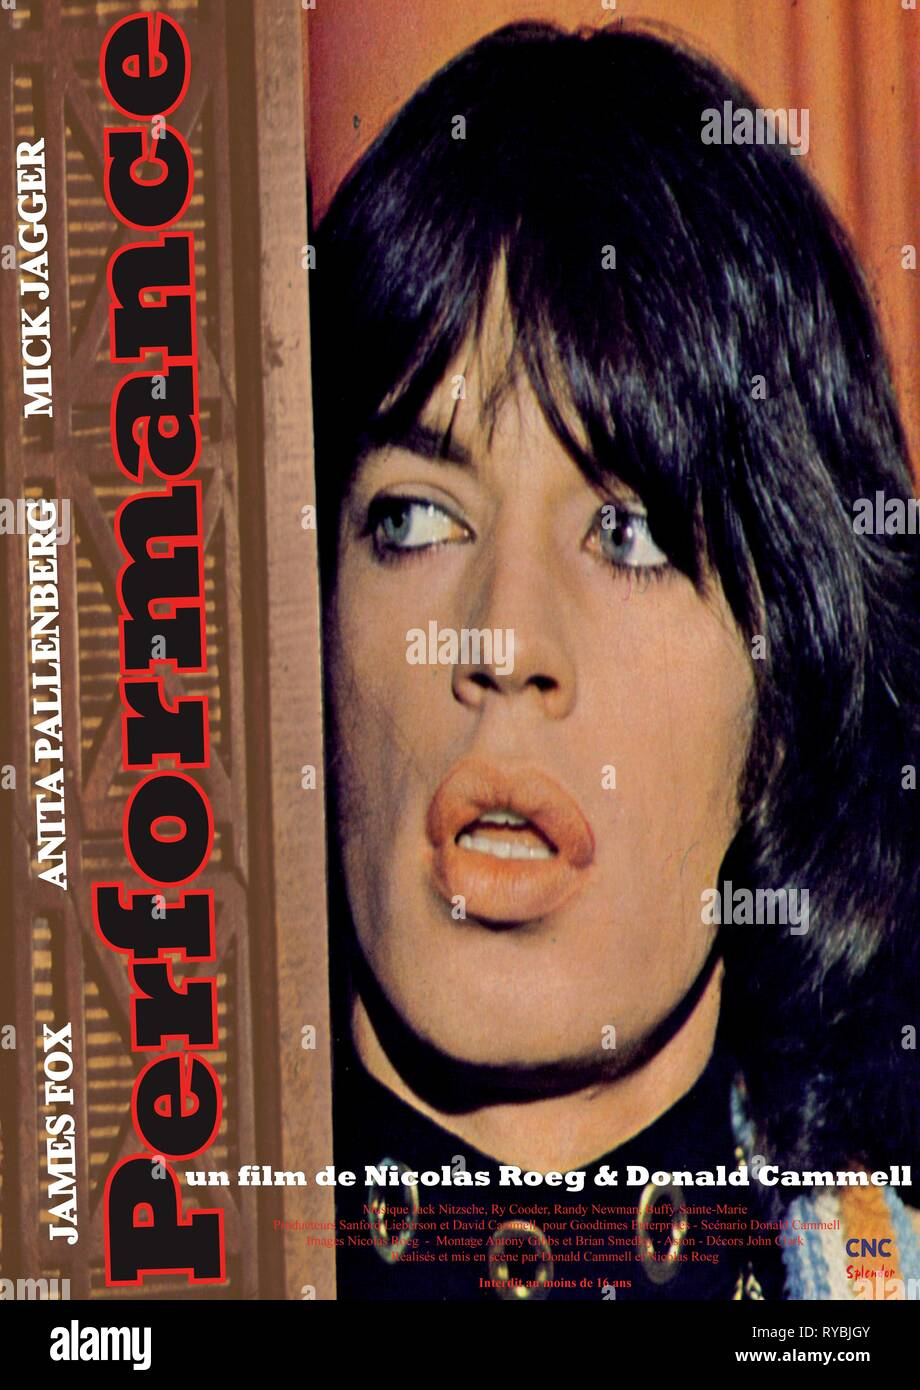 MICK JAGGER POSTER, PERFORMANCE, 1970 - Stock Image